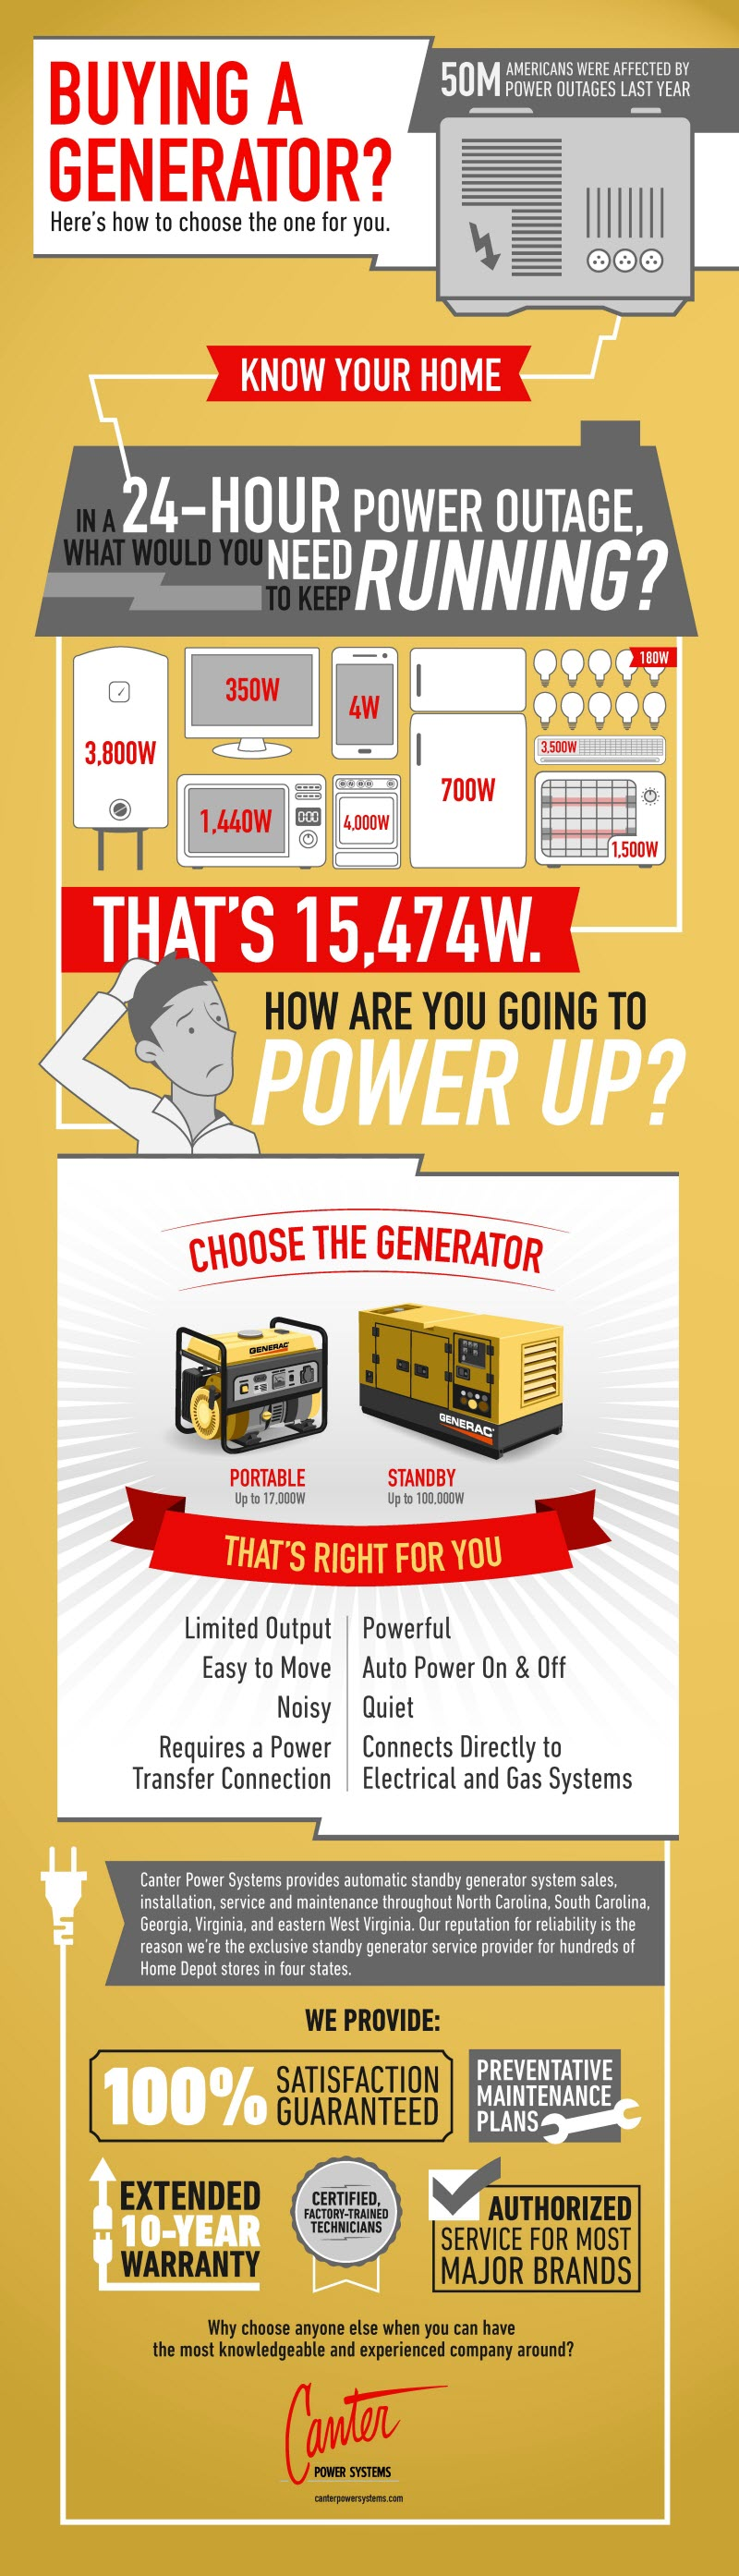 How to choose a generator 55